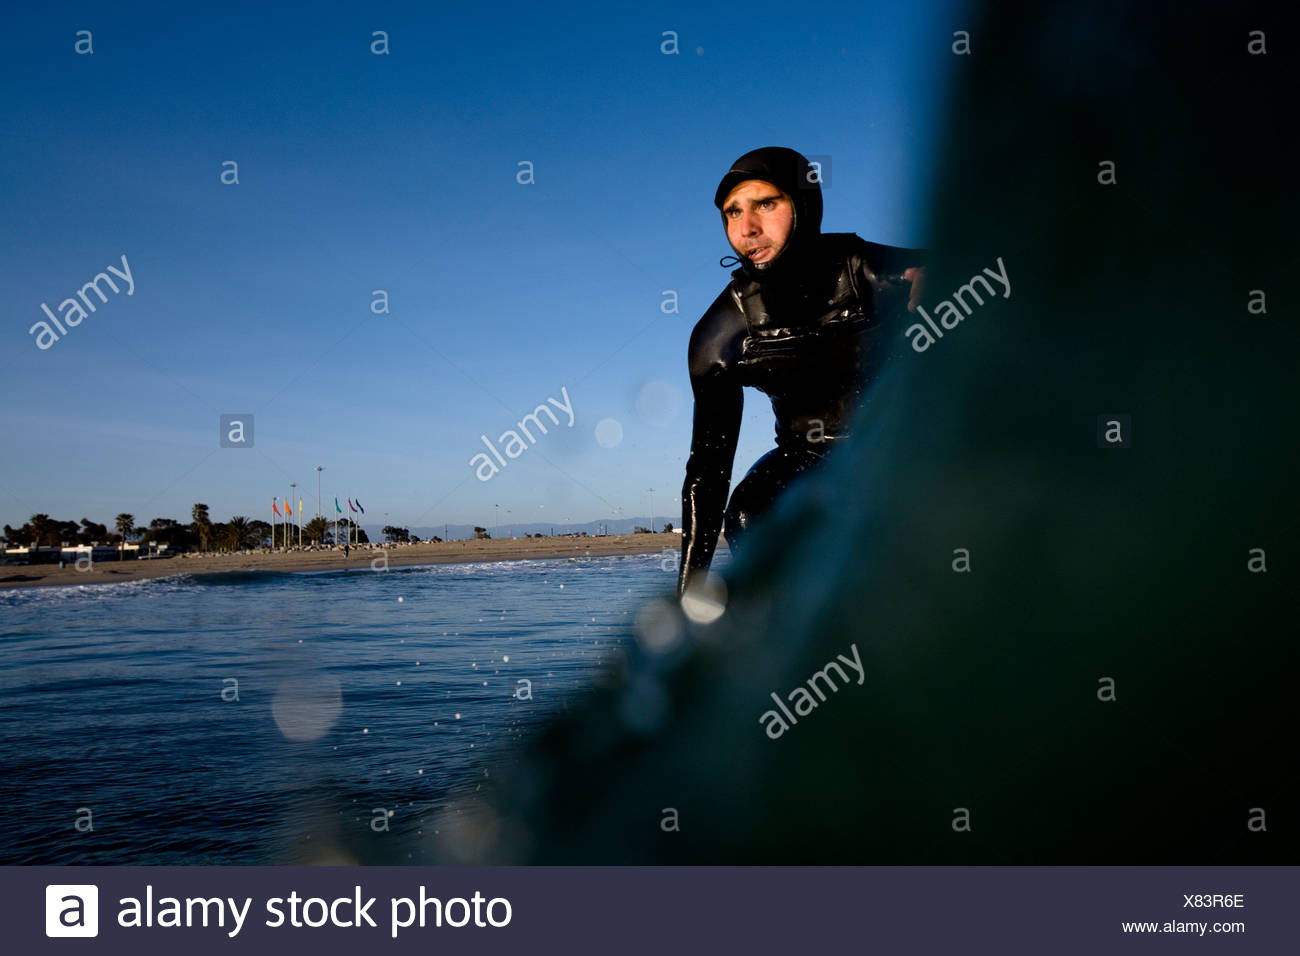 A surfer wearing a hood pumps down the line in Port Hueneme, California. - Stock Image